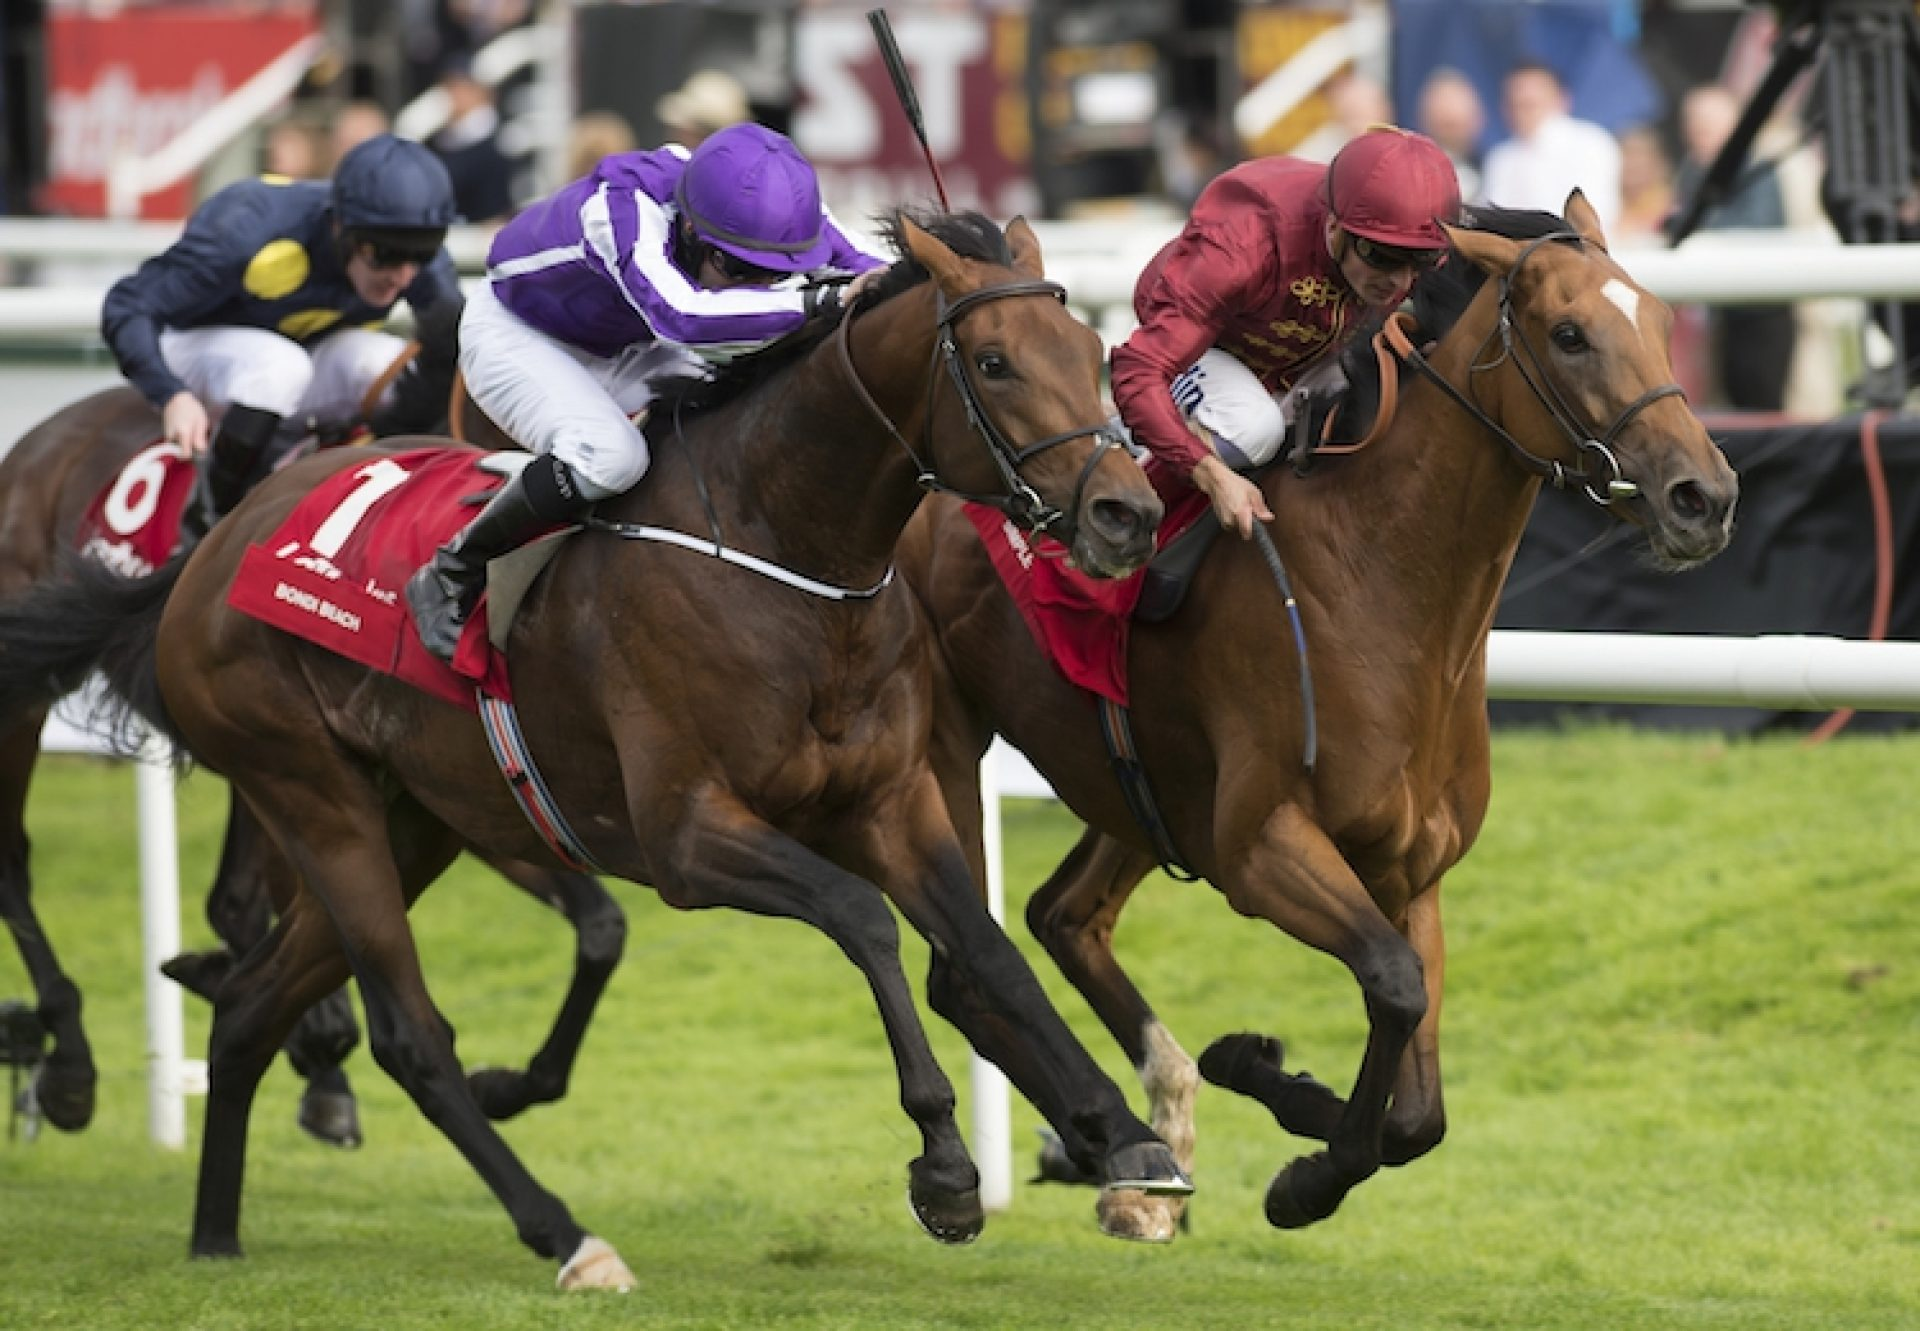 Bondi Beach (Galileo) winning the G1 St Leger at Doncaster